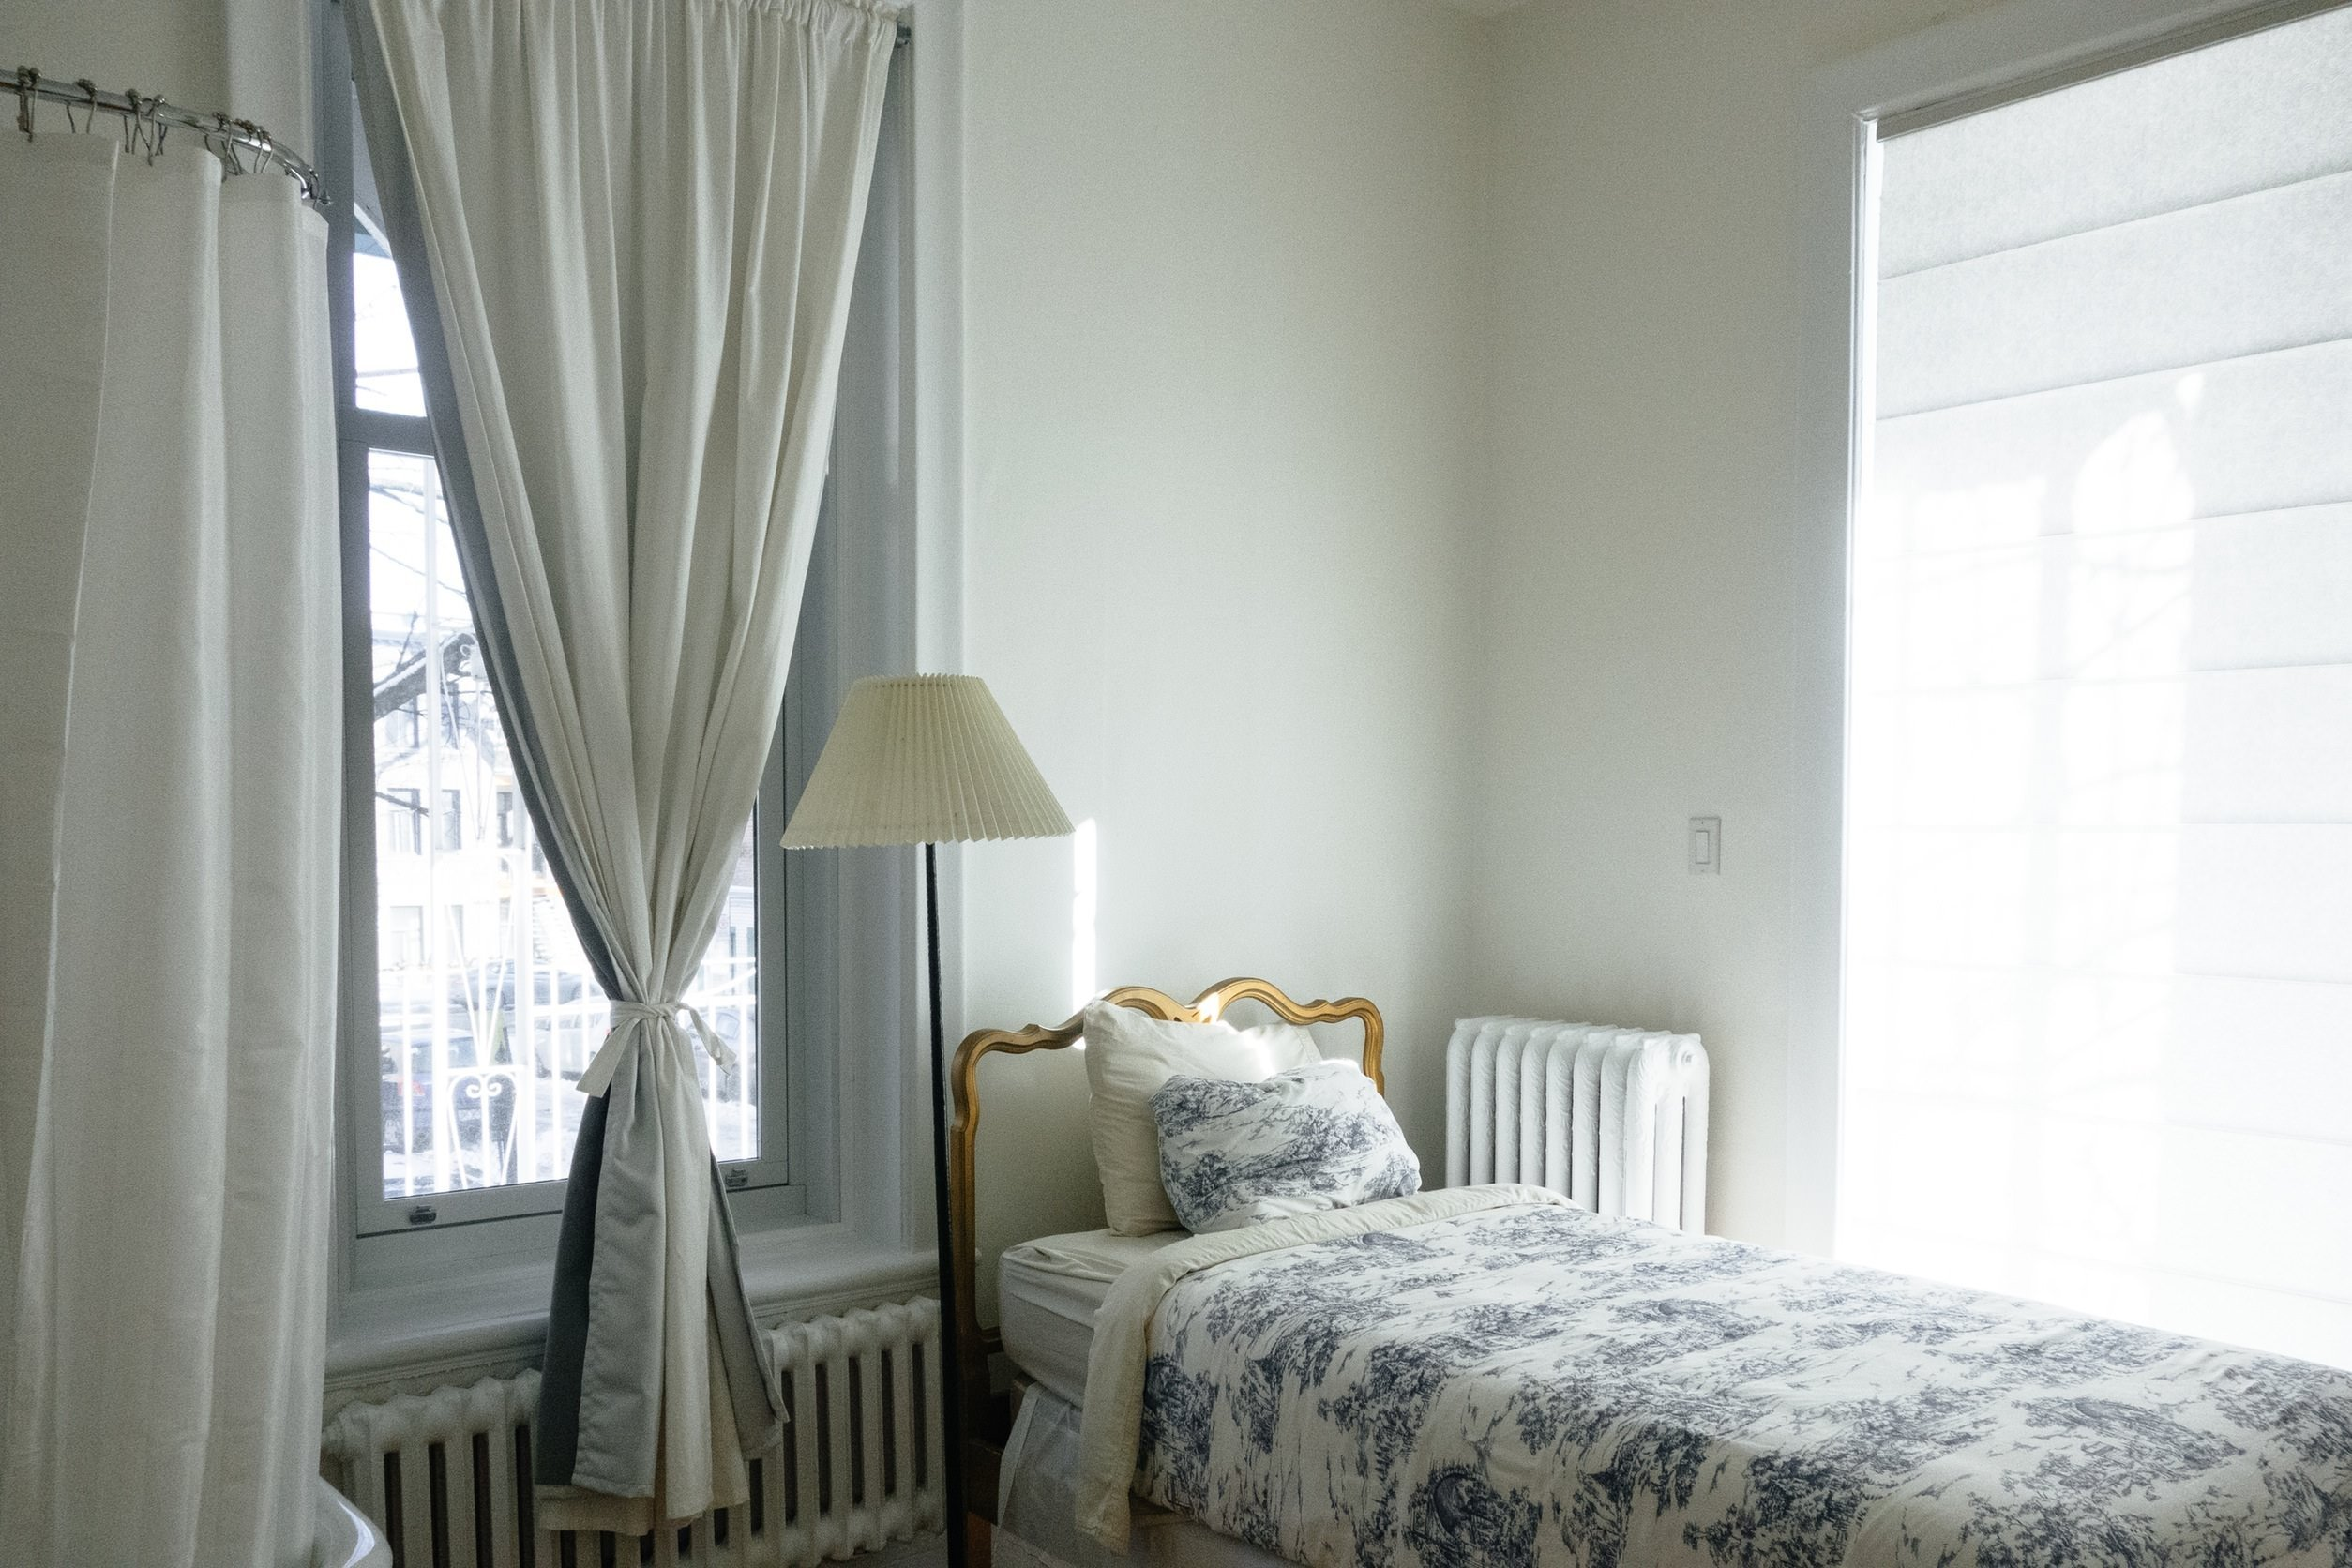 5 Top Tricks to Make Your Bedroom Look More Expensive